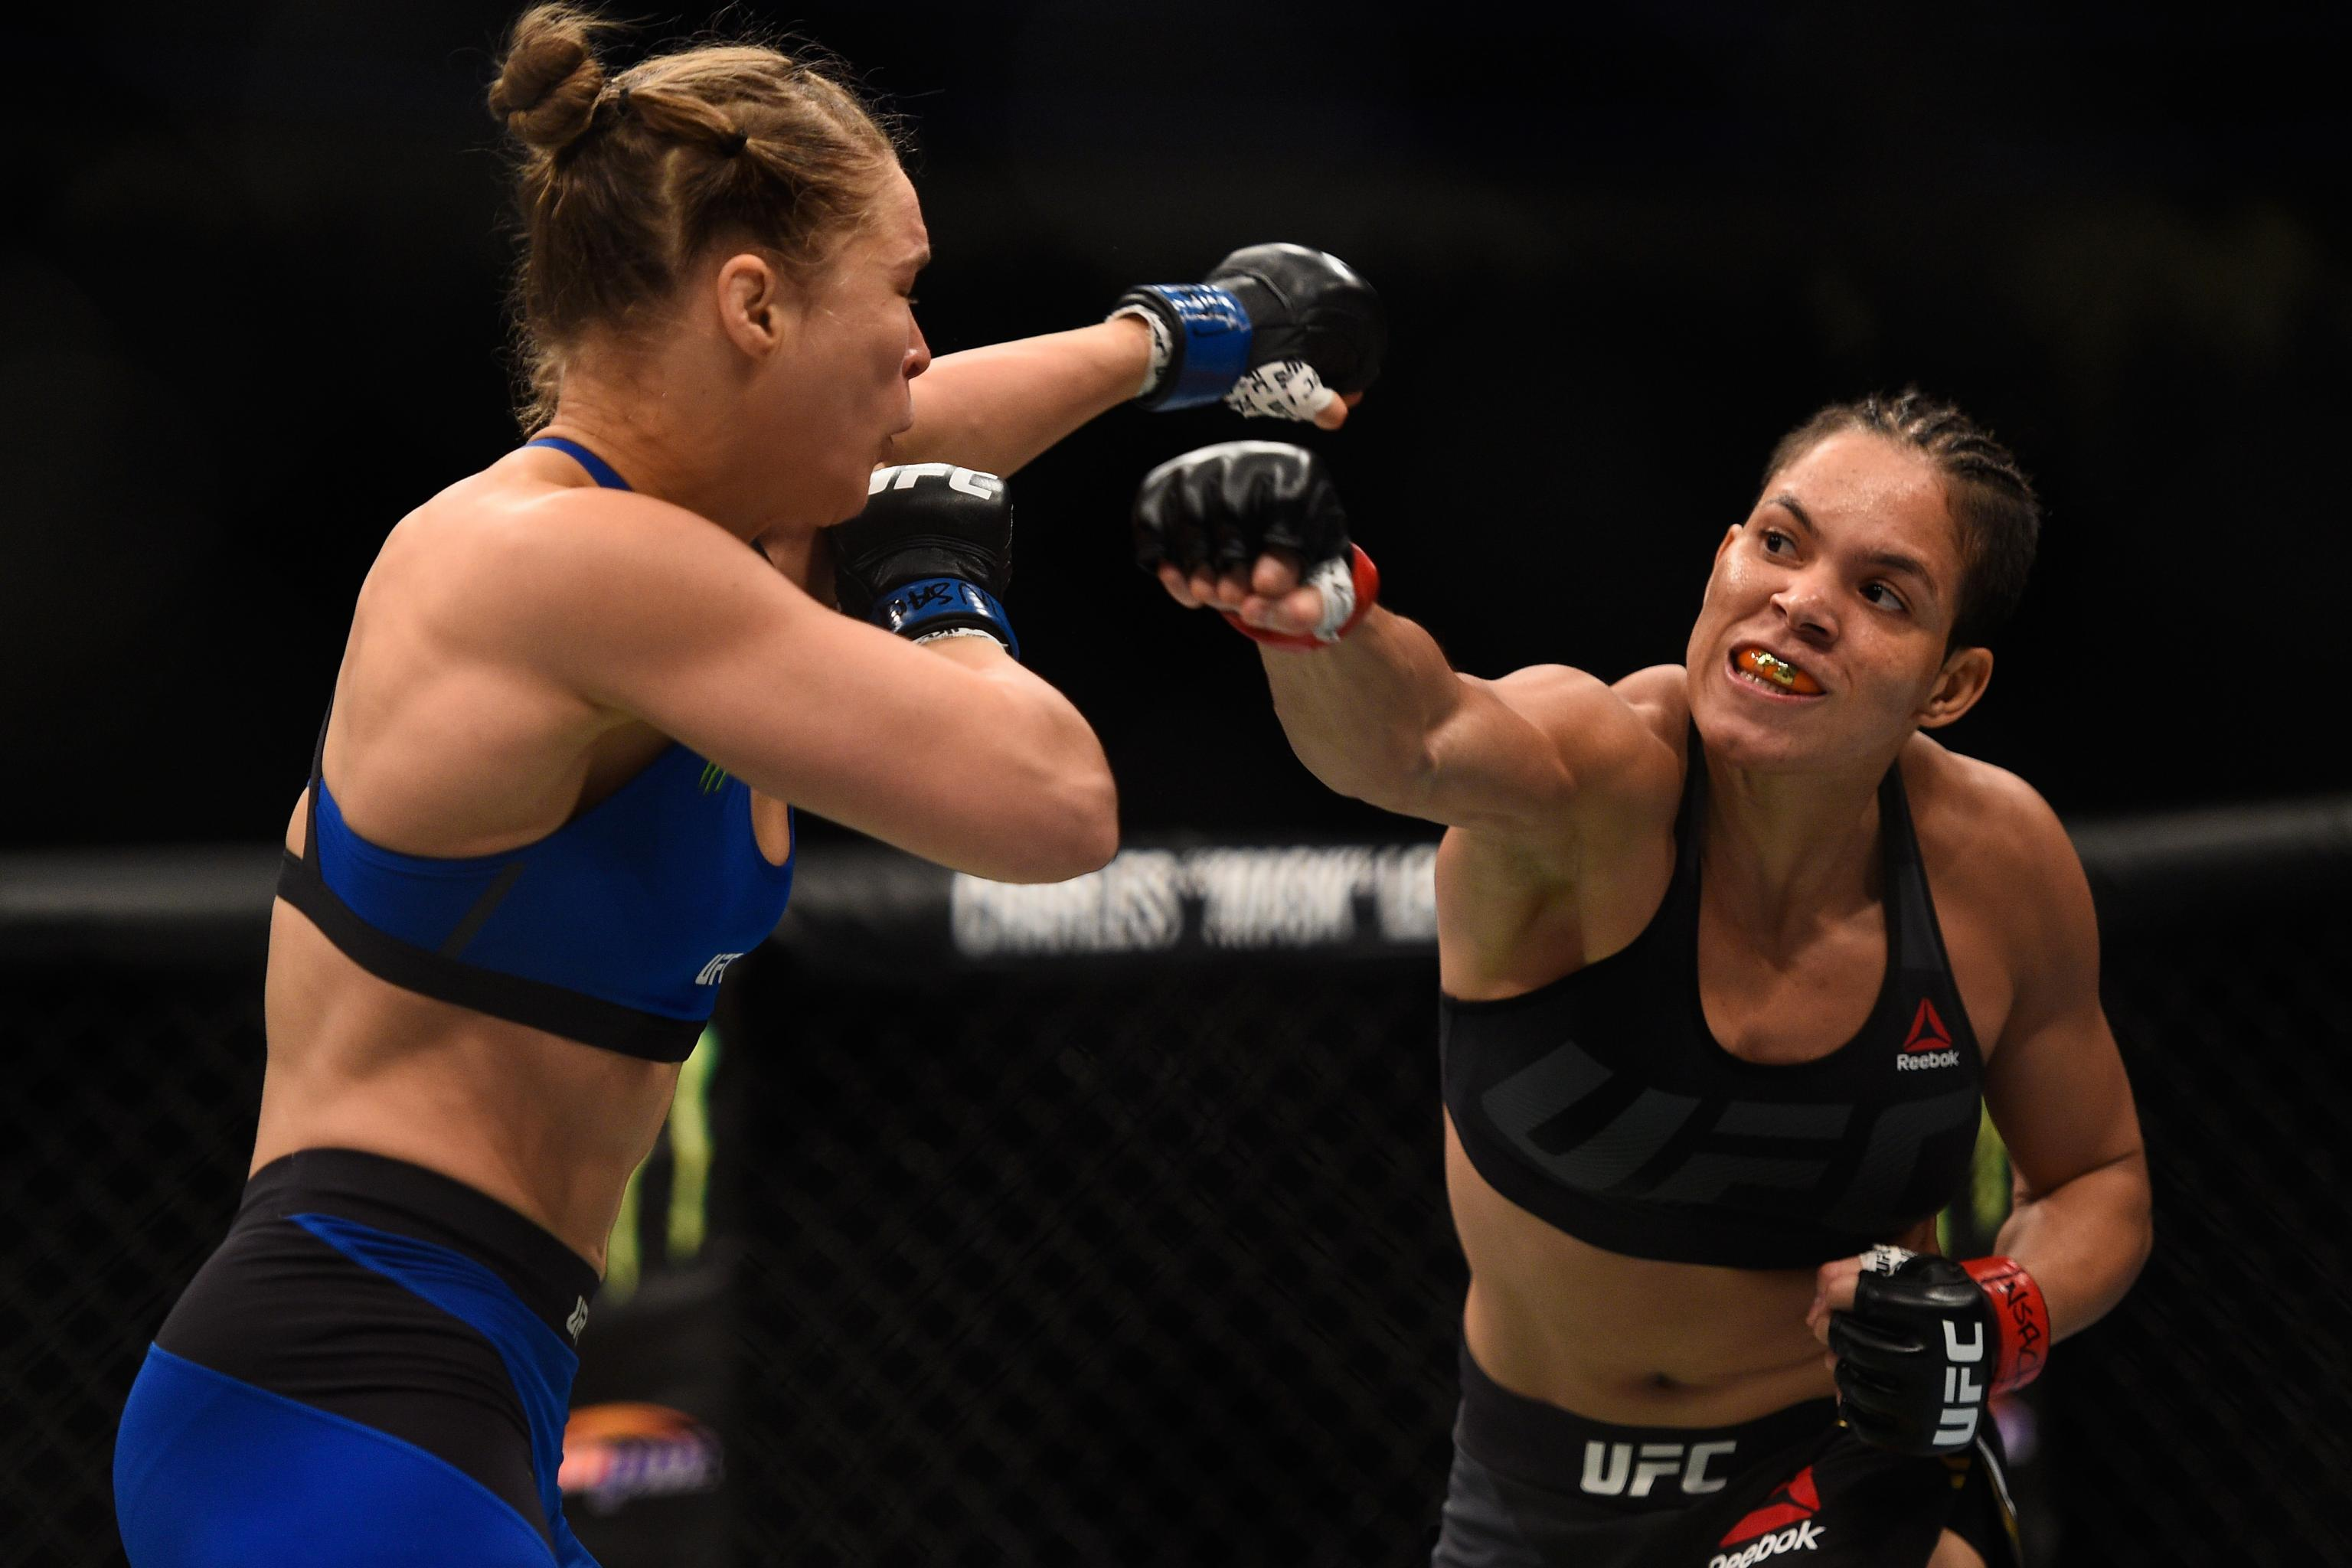 Amanda Tate ufc 213: after crushing rousey and tate, amanda nunes fights